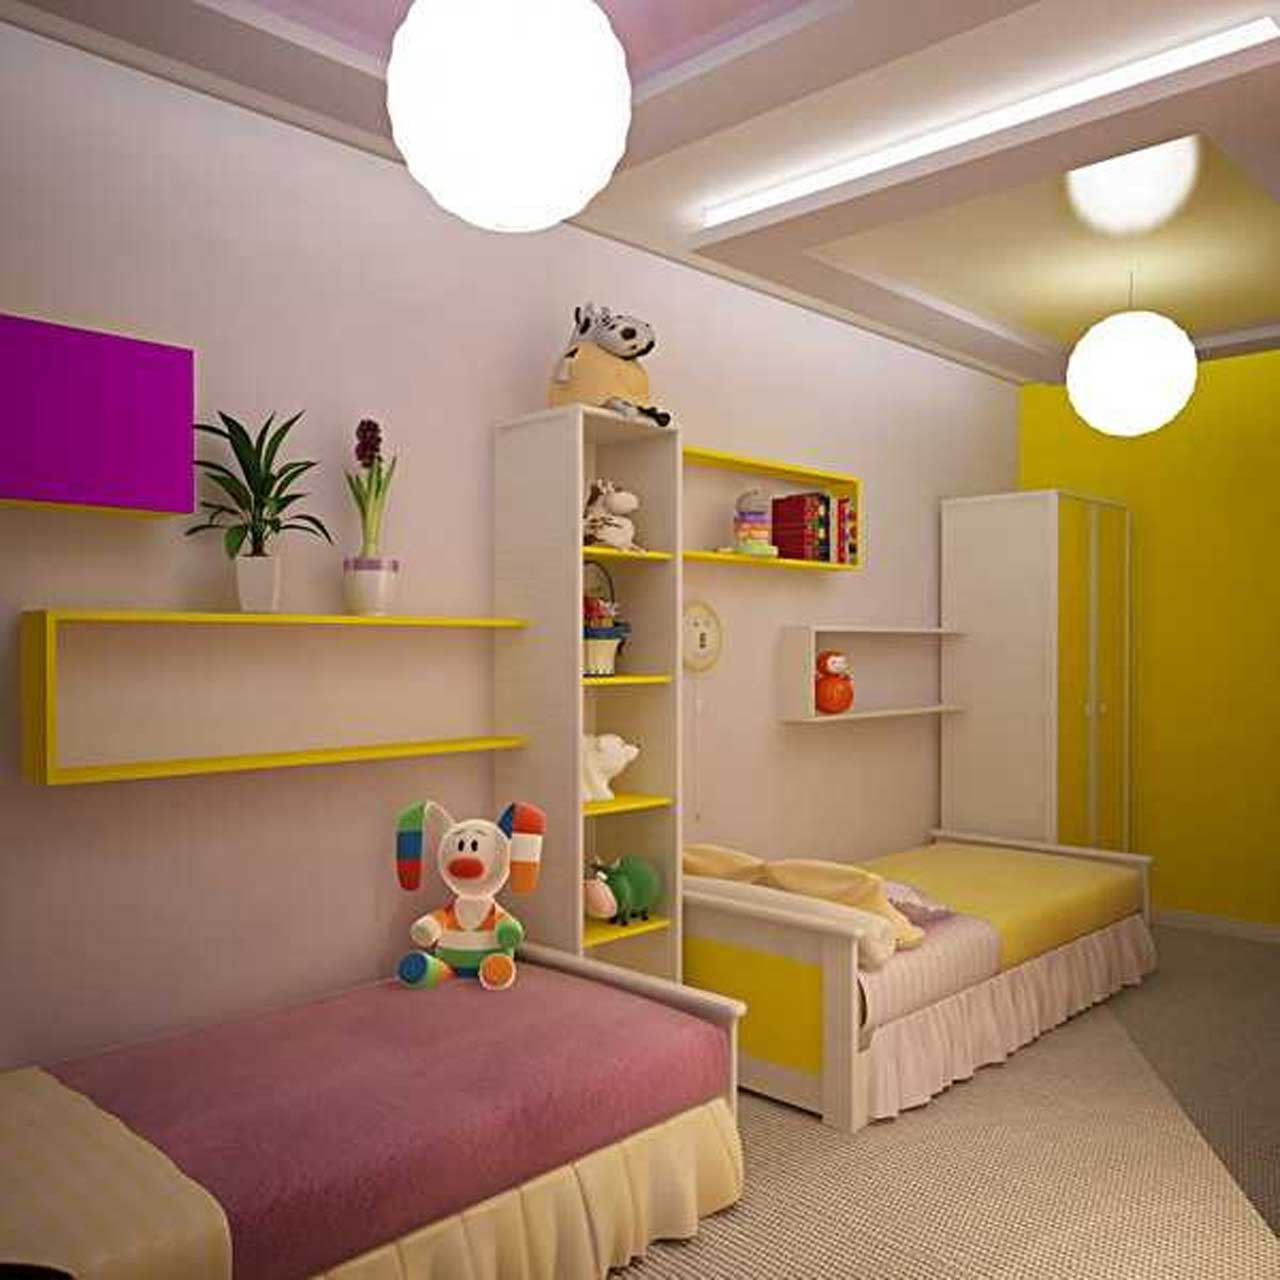 Best ideas about Kids Room Decor . Save or Pin Kids Desire and Kids Room Decor Amaza Design Now.